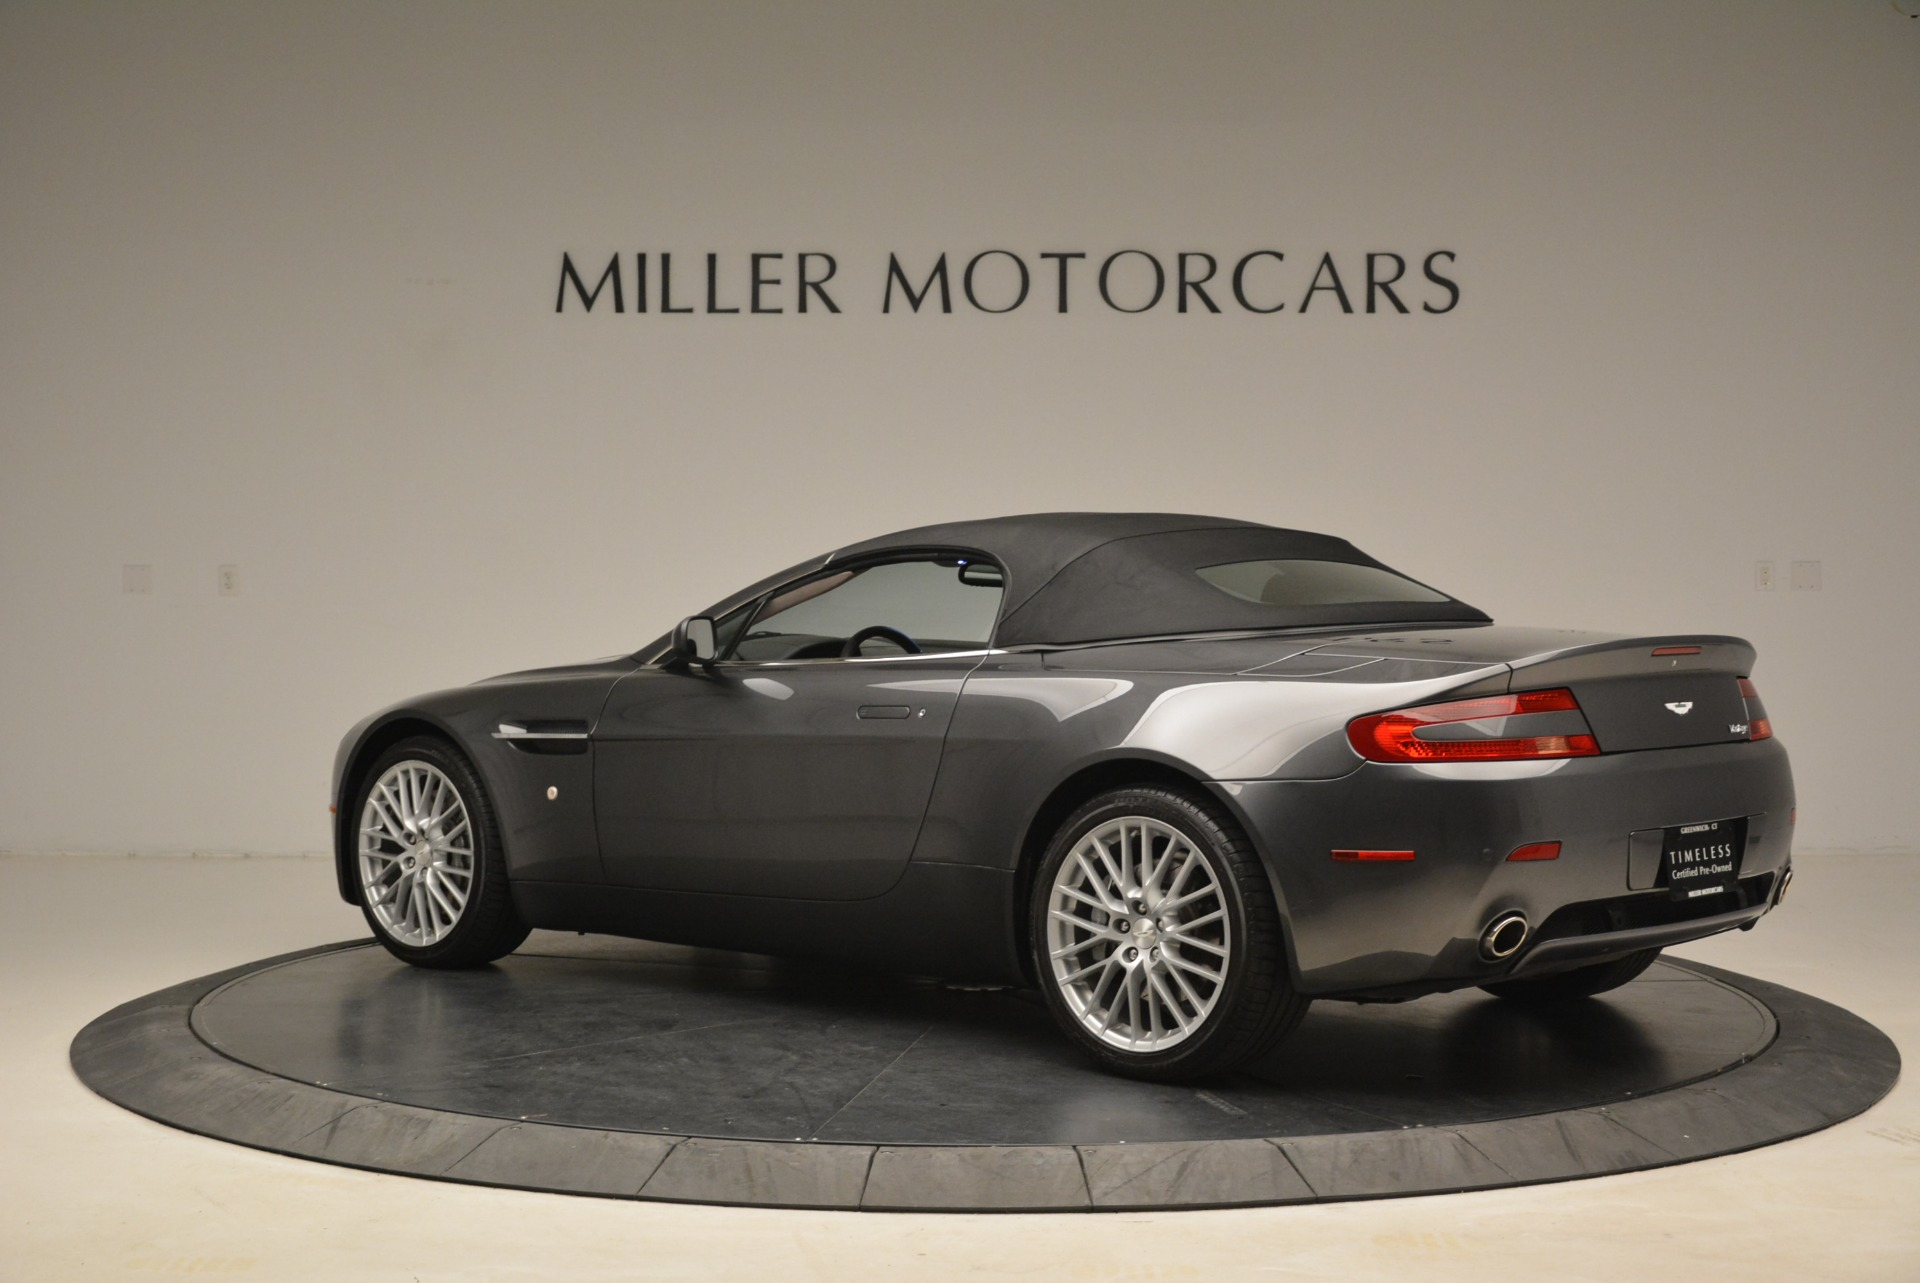 Used 2009 Aston Martin V8 Vantage Roadster For Sale In Westport, CT 2123_p16